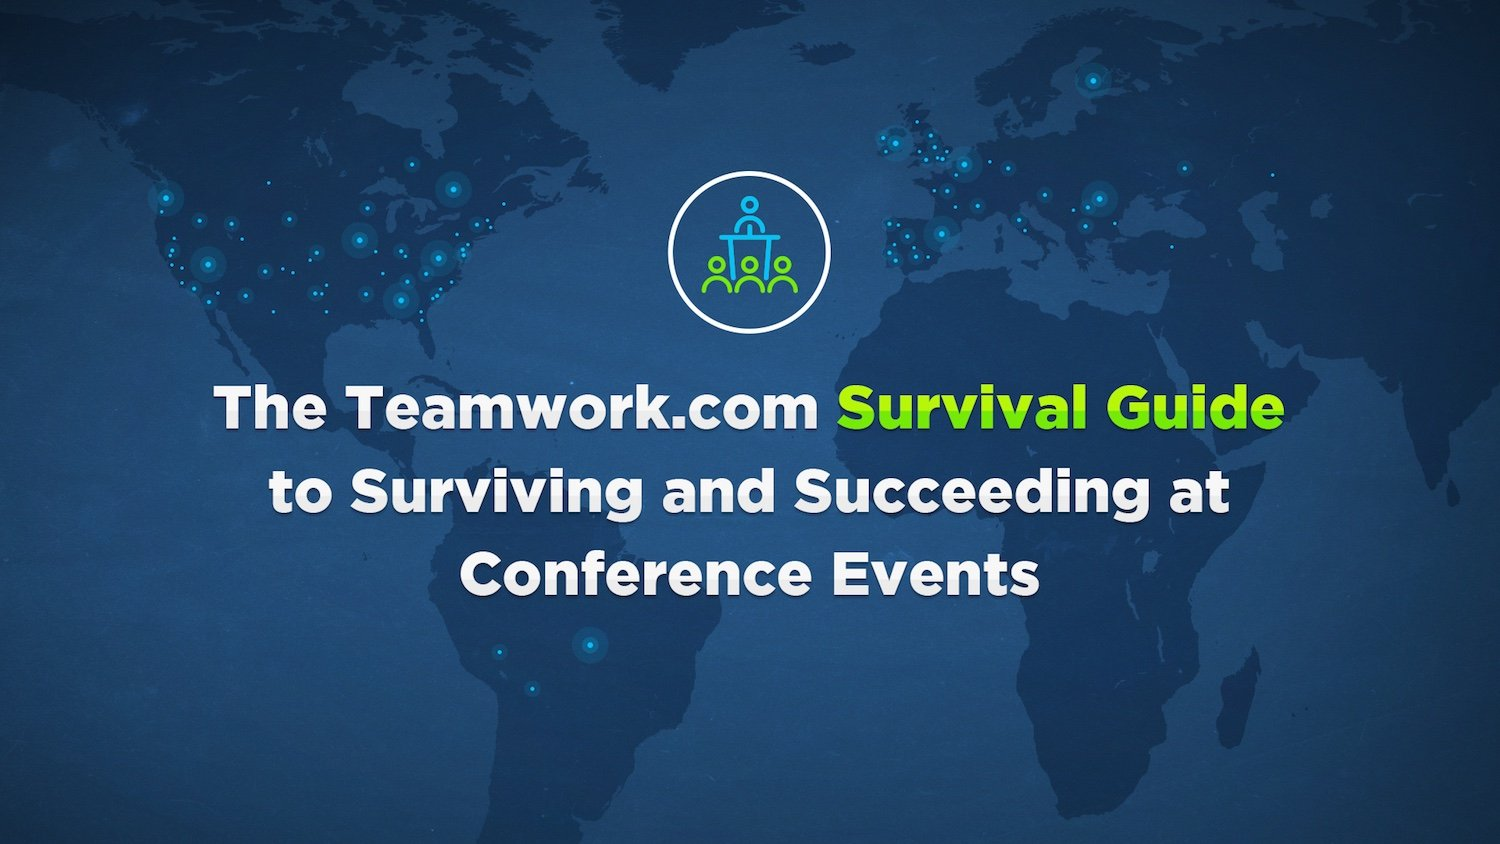 Teamwork.com Survival Guide to Conferences and Events | Teamwork.com High Performance Blog